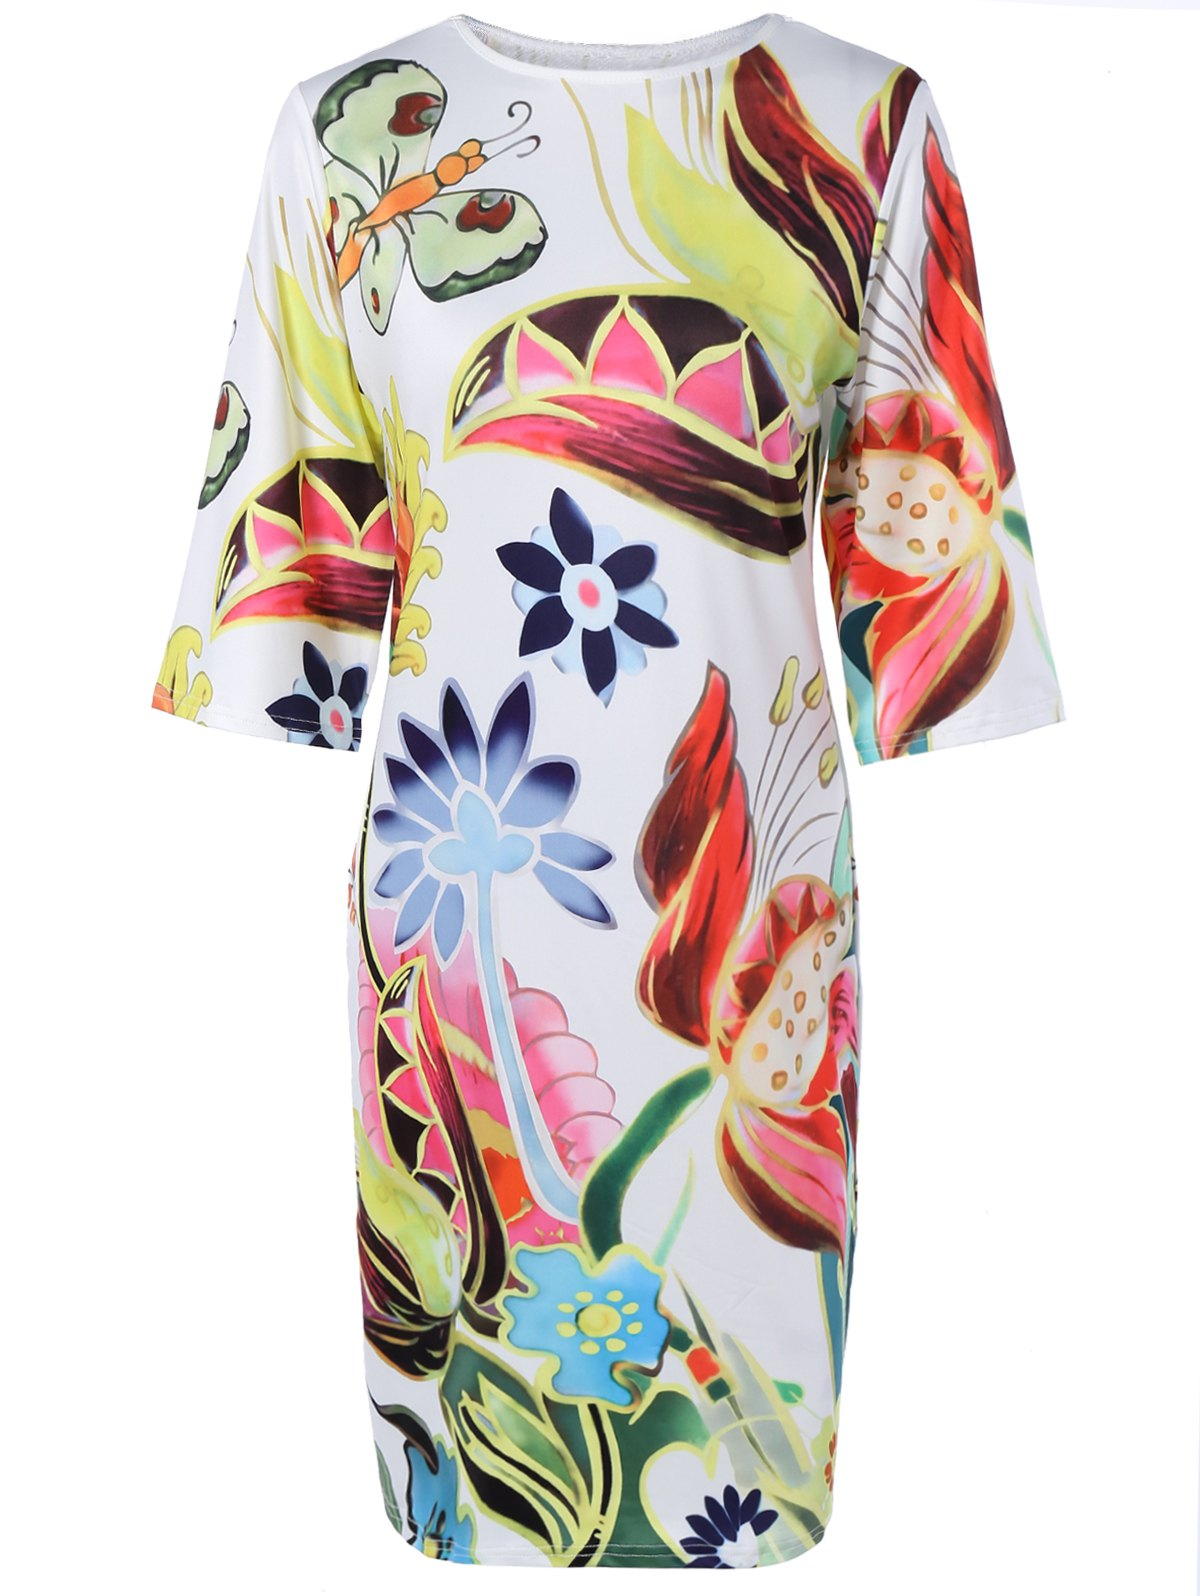 Colorized Half Sleeve Floral Dress For Women